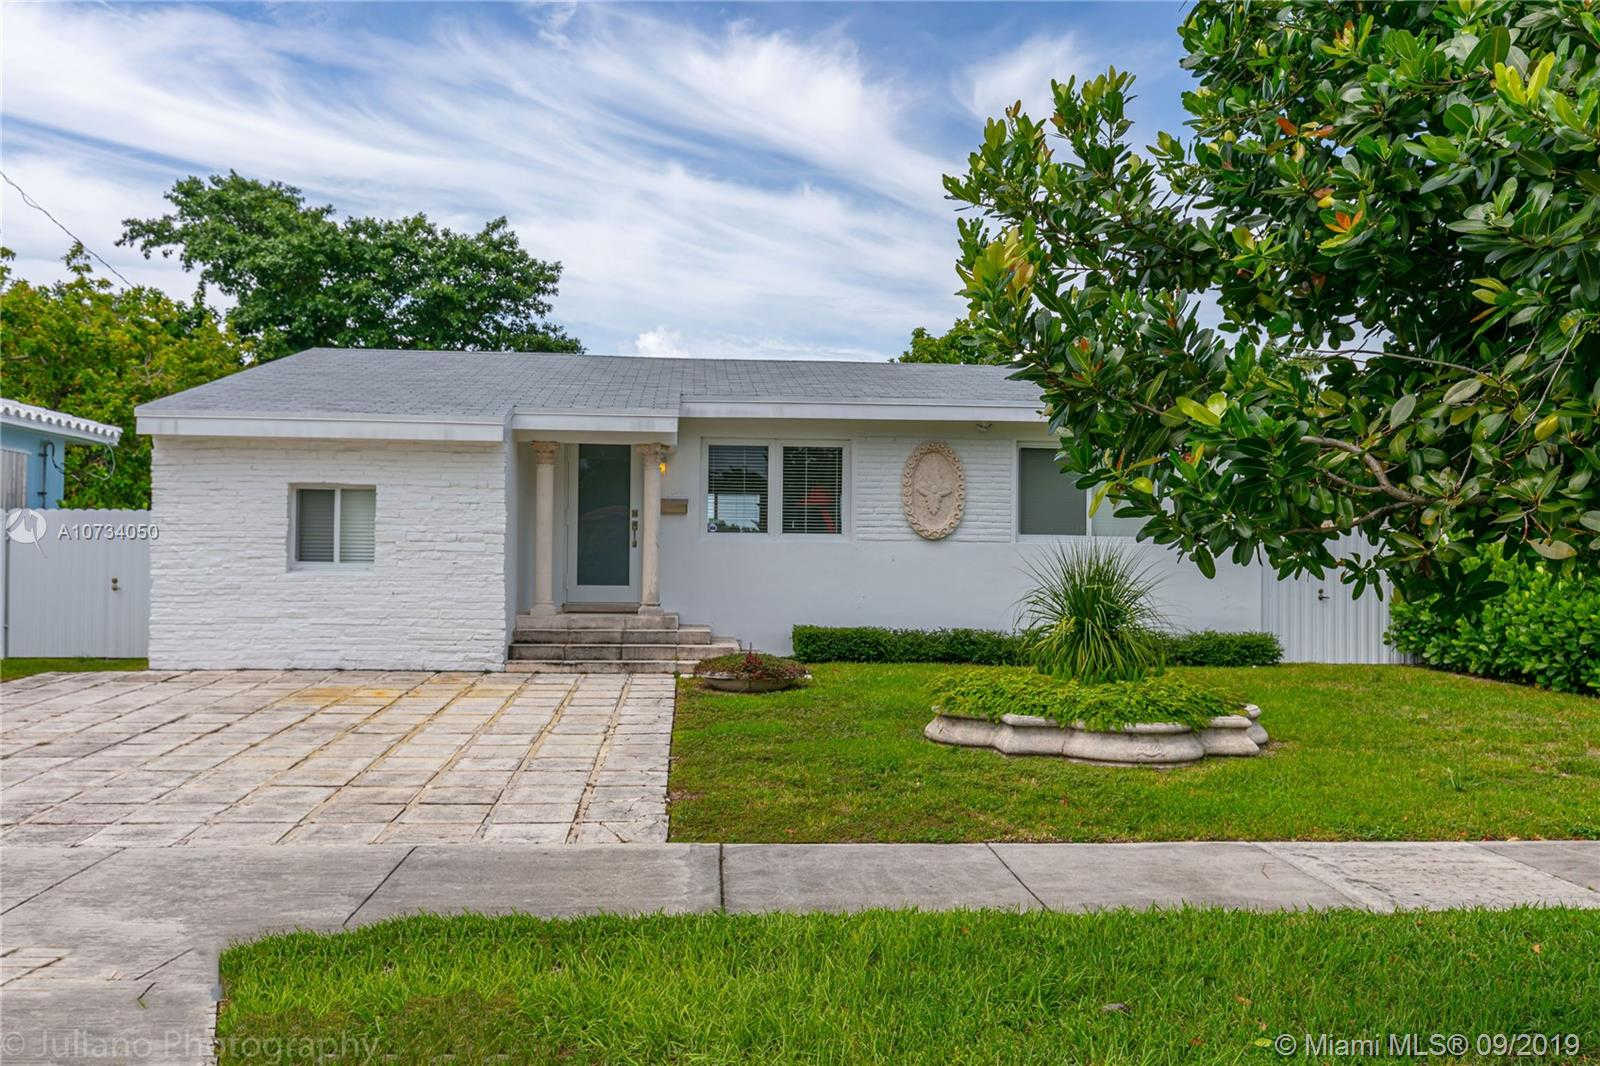 6451 Tamiami Canal Rd, Miami, FL 33126 is now new to the market!